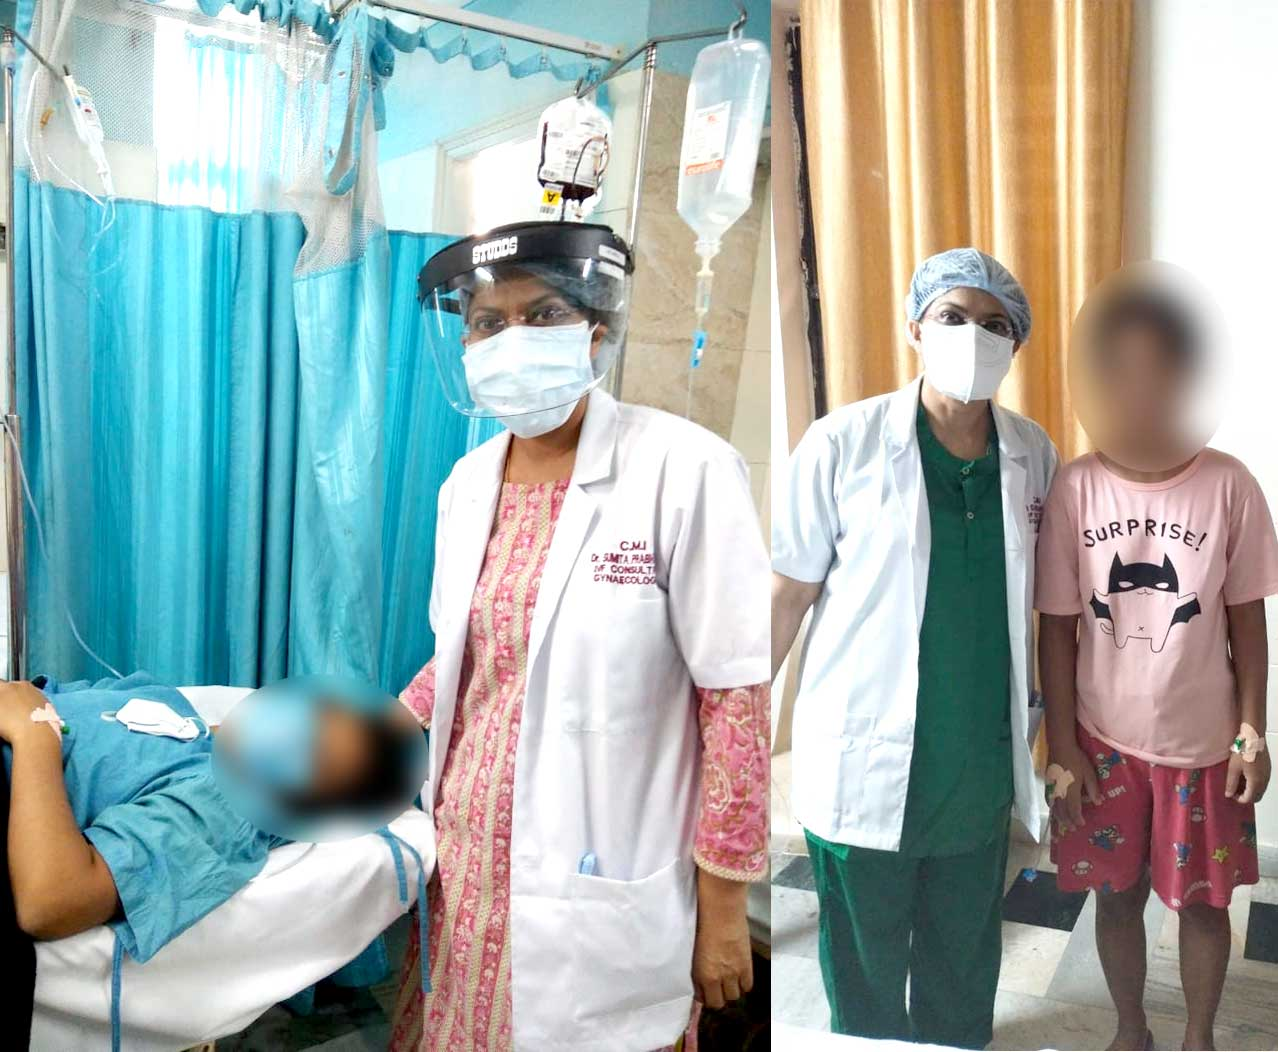 Dr Sumita Prabhakar removed 15 fibroid from a young girl,